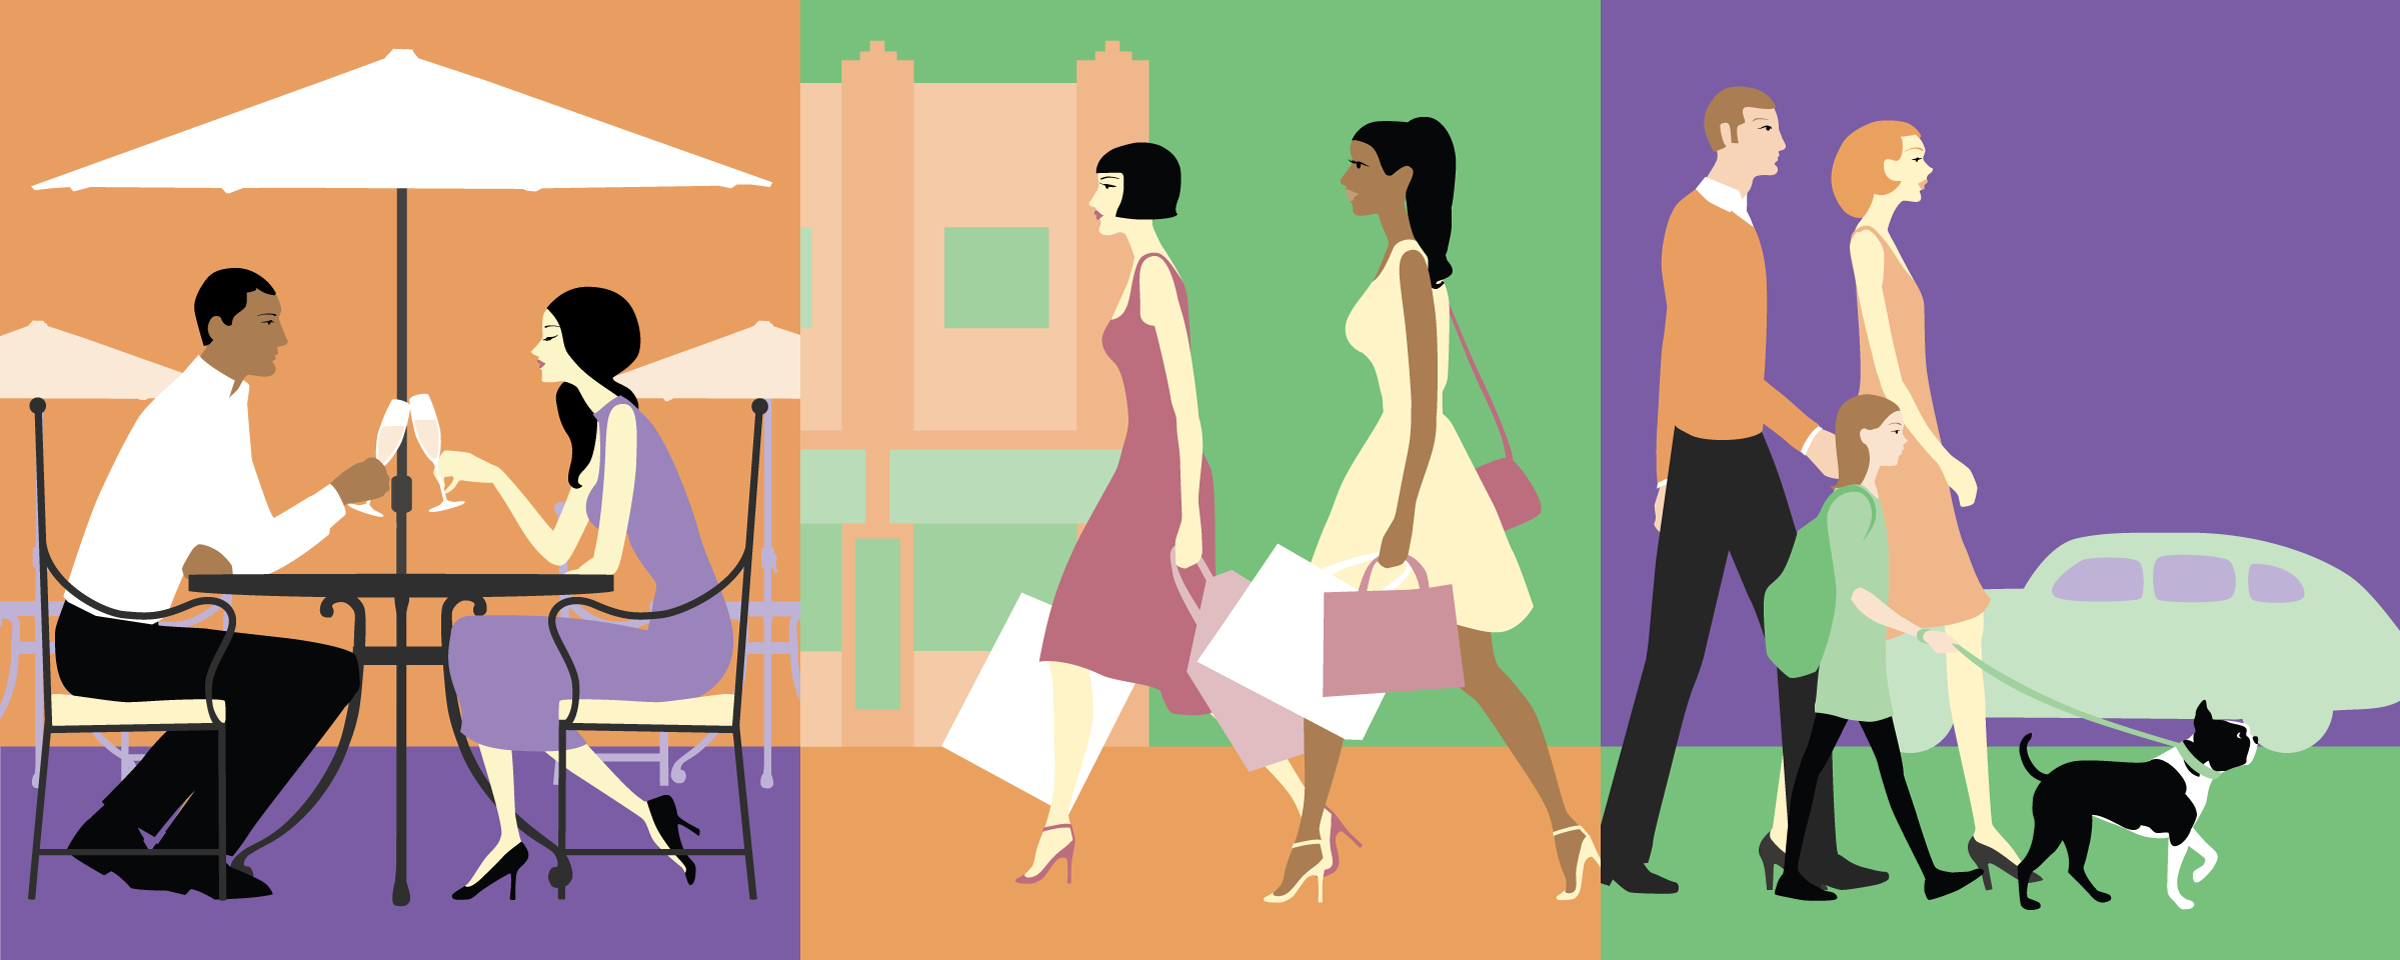 Art Deco inspired illustration eating, shopping, and walking